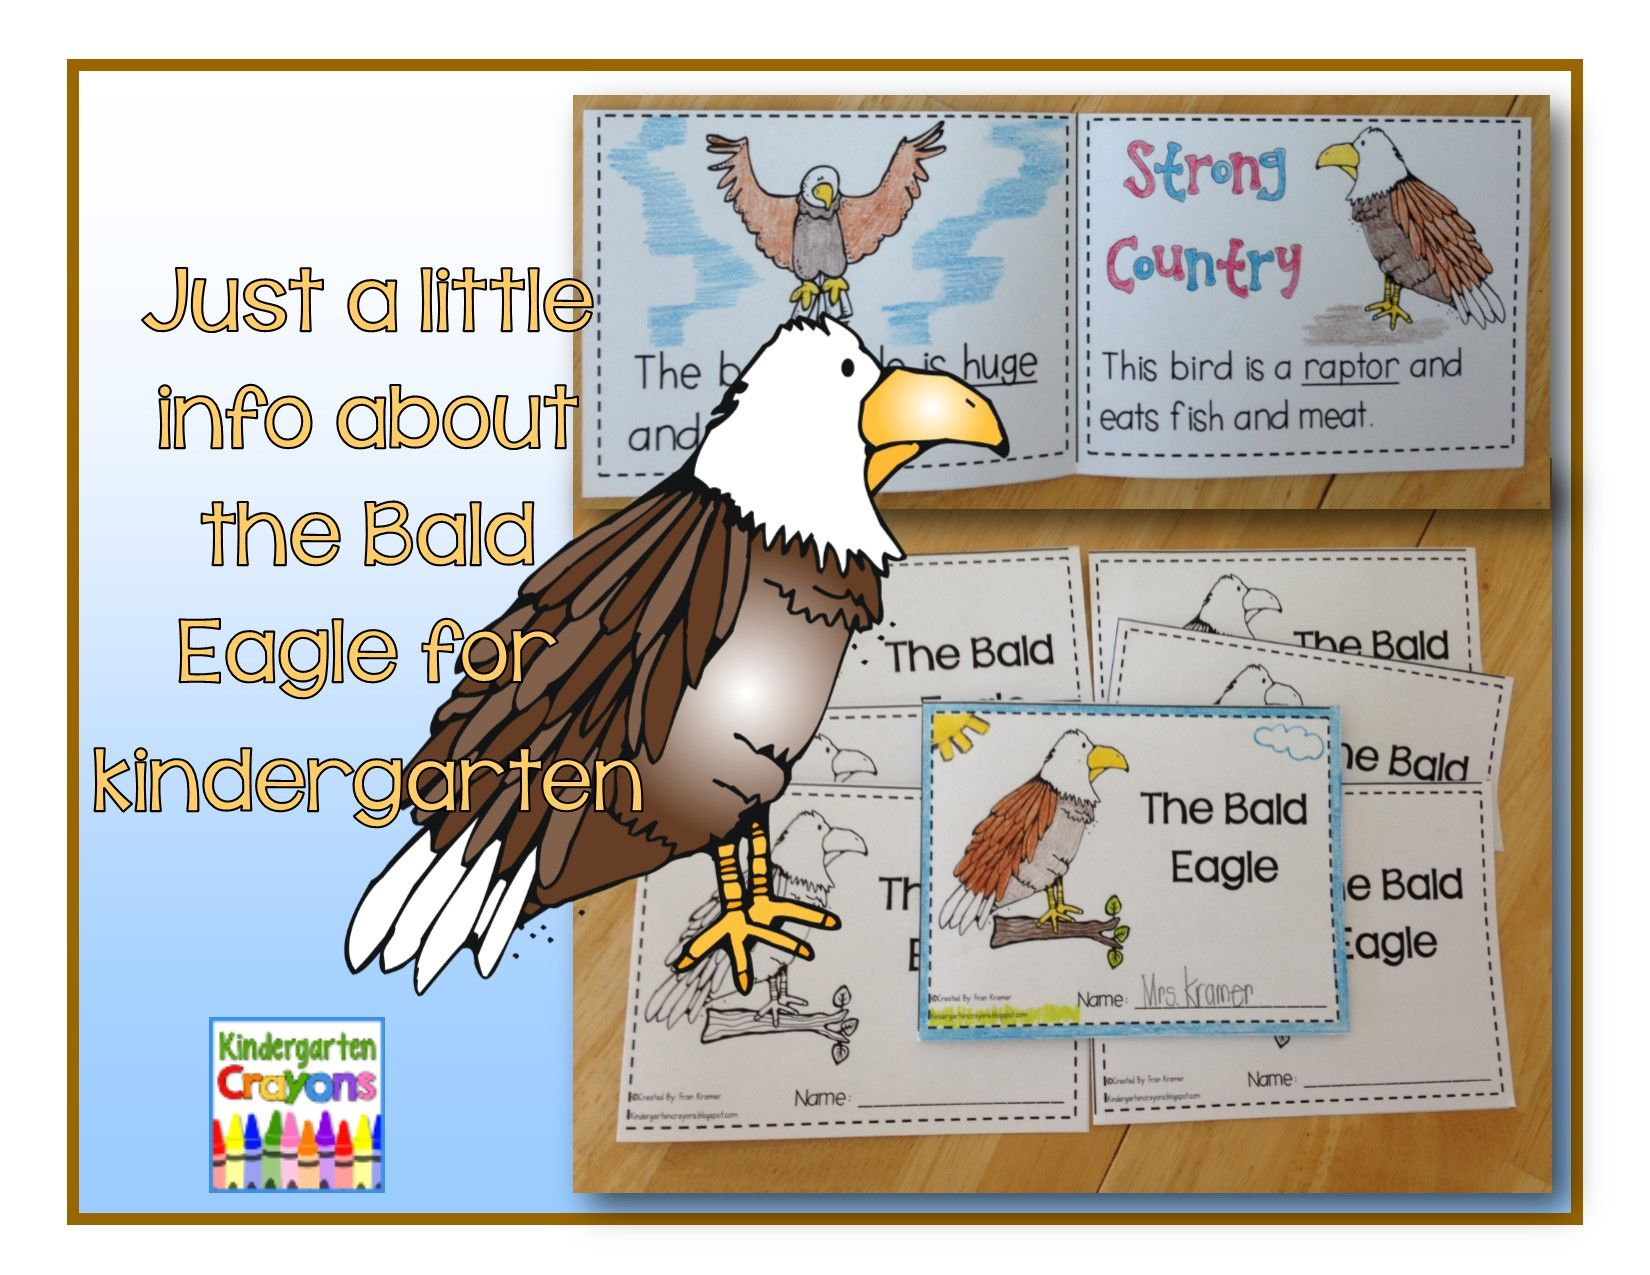 This Is A Cute Foldable For My Class On The Bald Eagle I